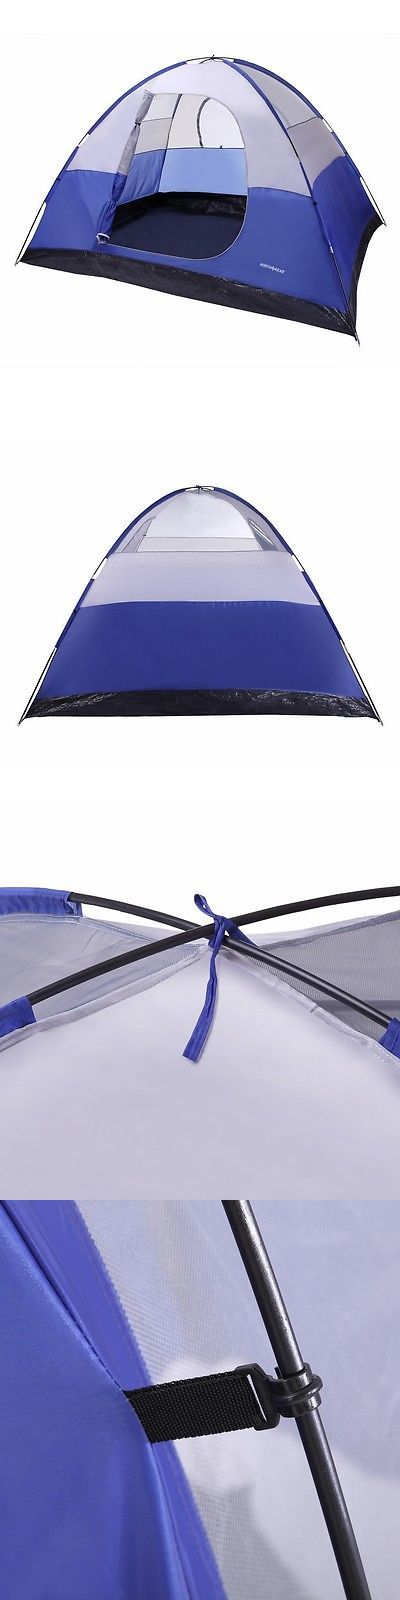 Tents 179010 North Gear C&ing 6 Person Dome Family C&ing Tent In Blue BUY IT & Tents 179010: North Gear Camping 6 Person Dome Family Camping Tent ...